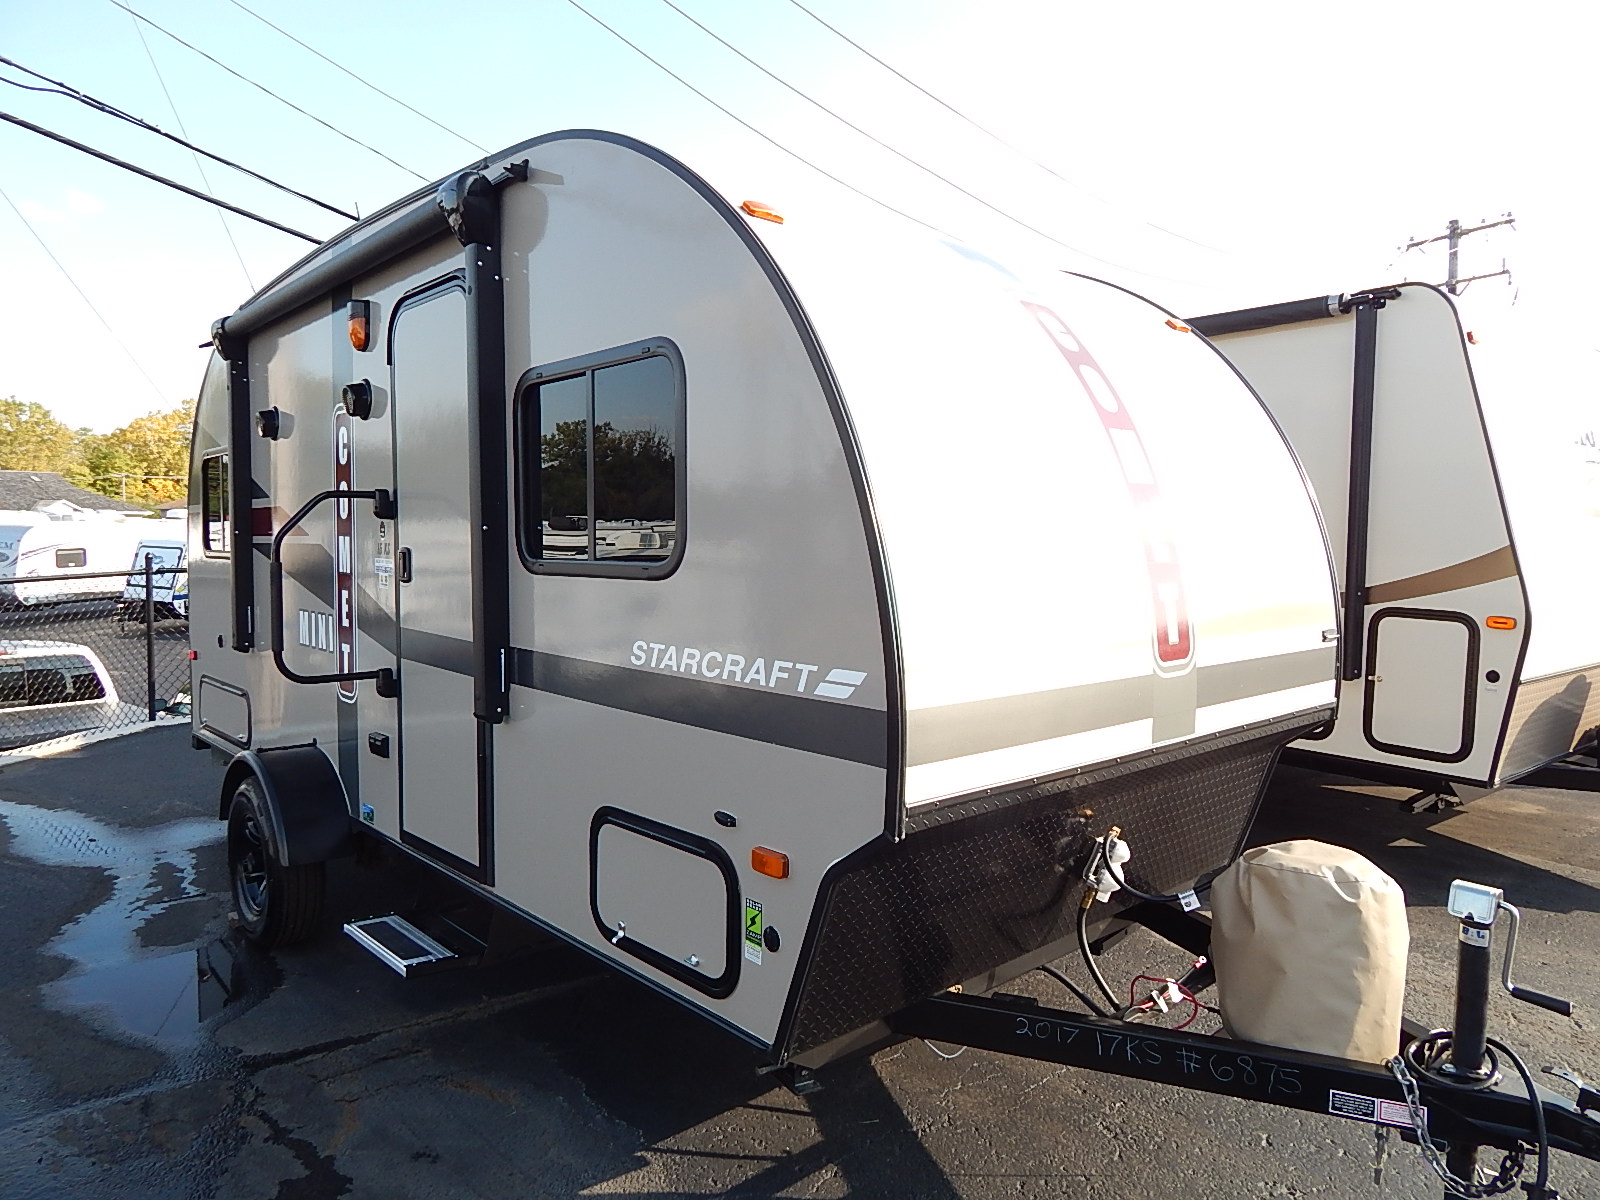 USED 2017 Starcraft COMET MINI 16KS - Rick's RV Center